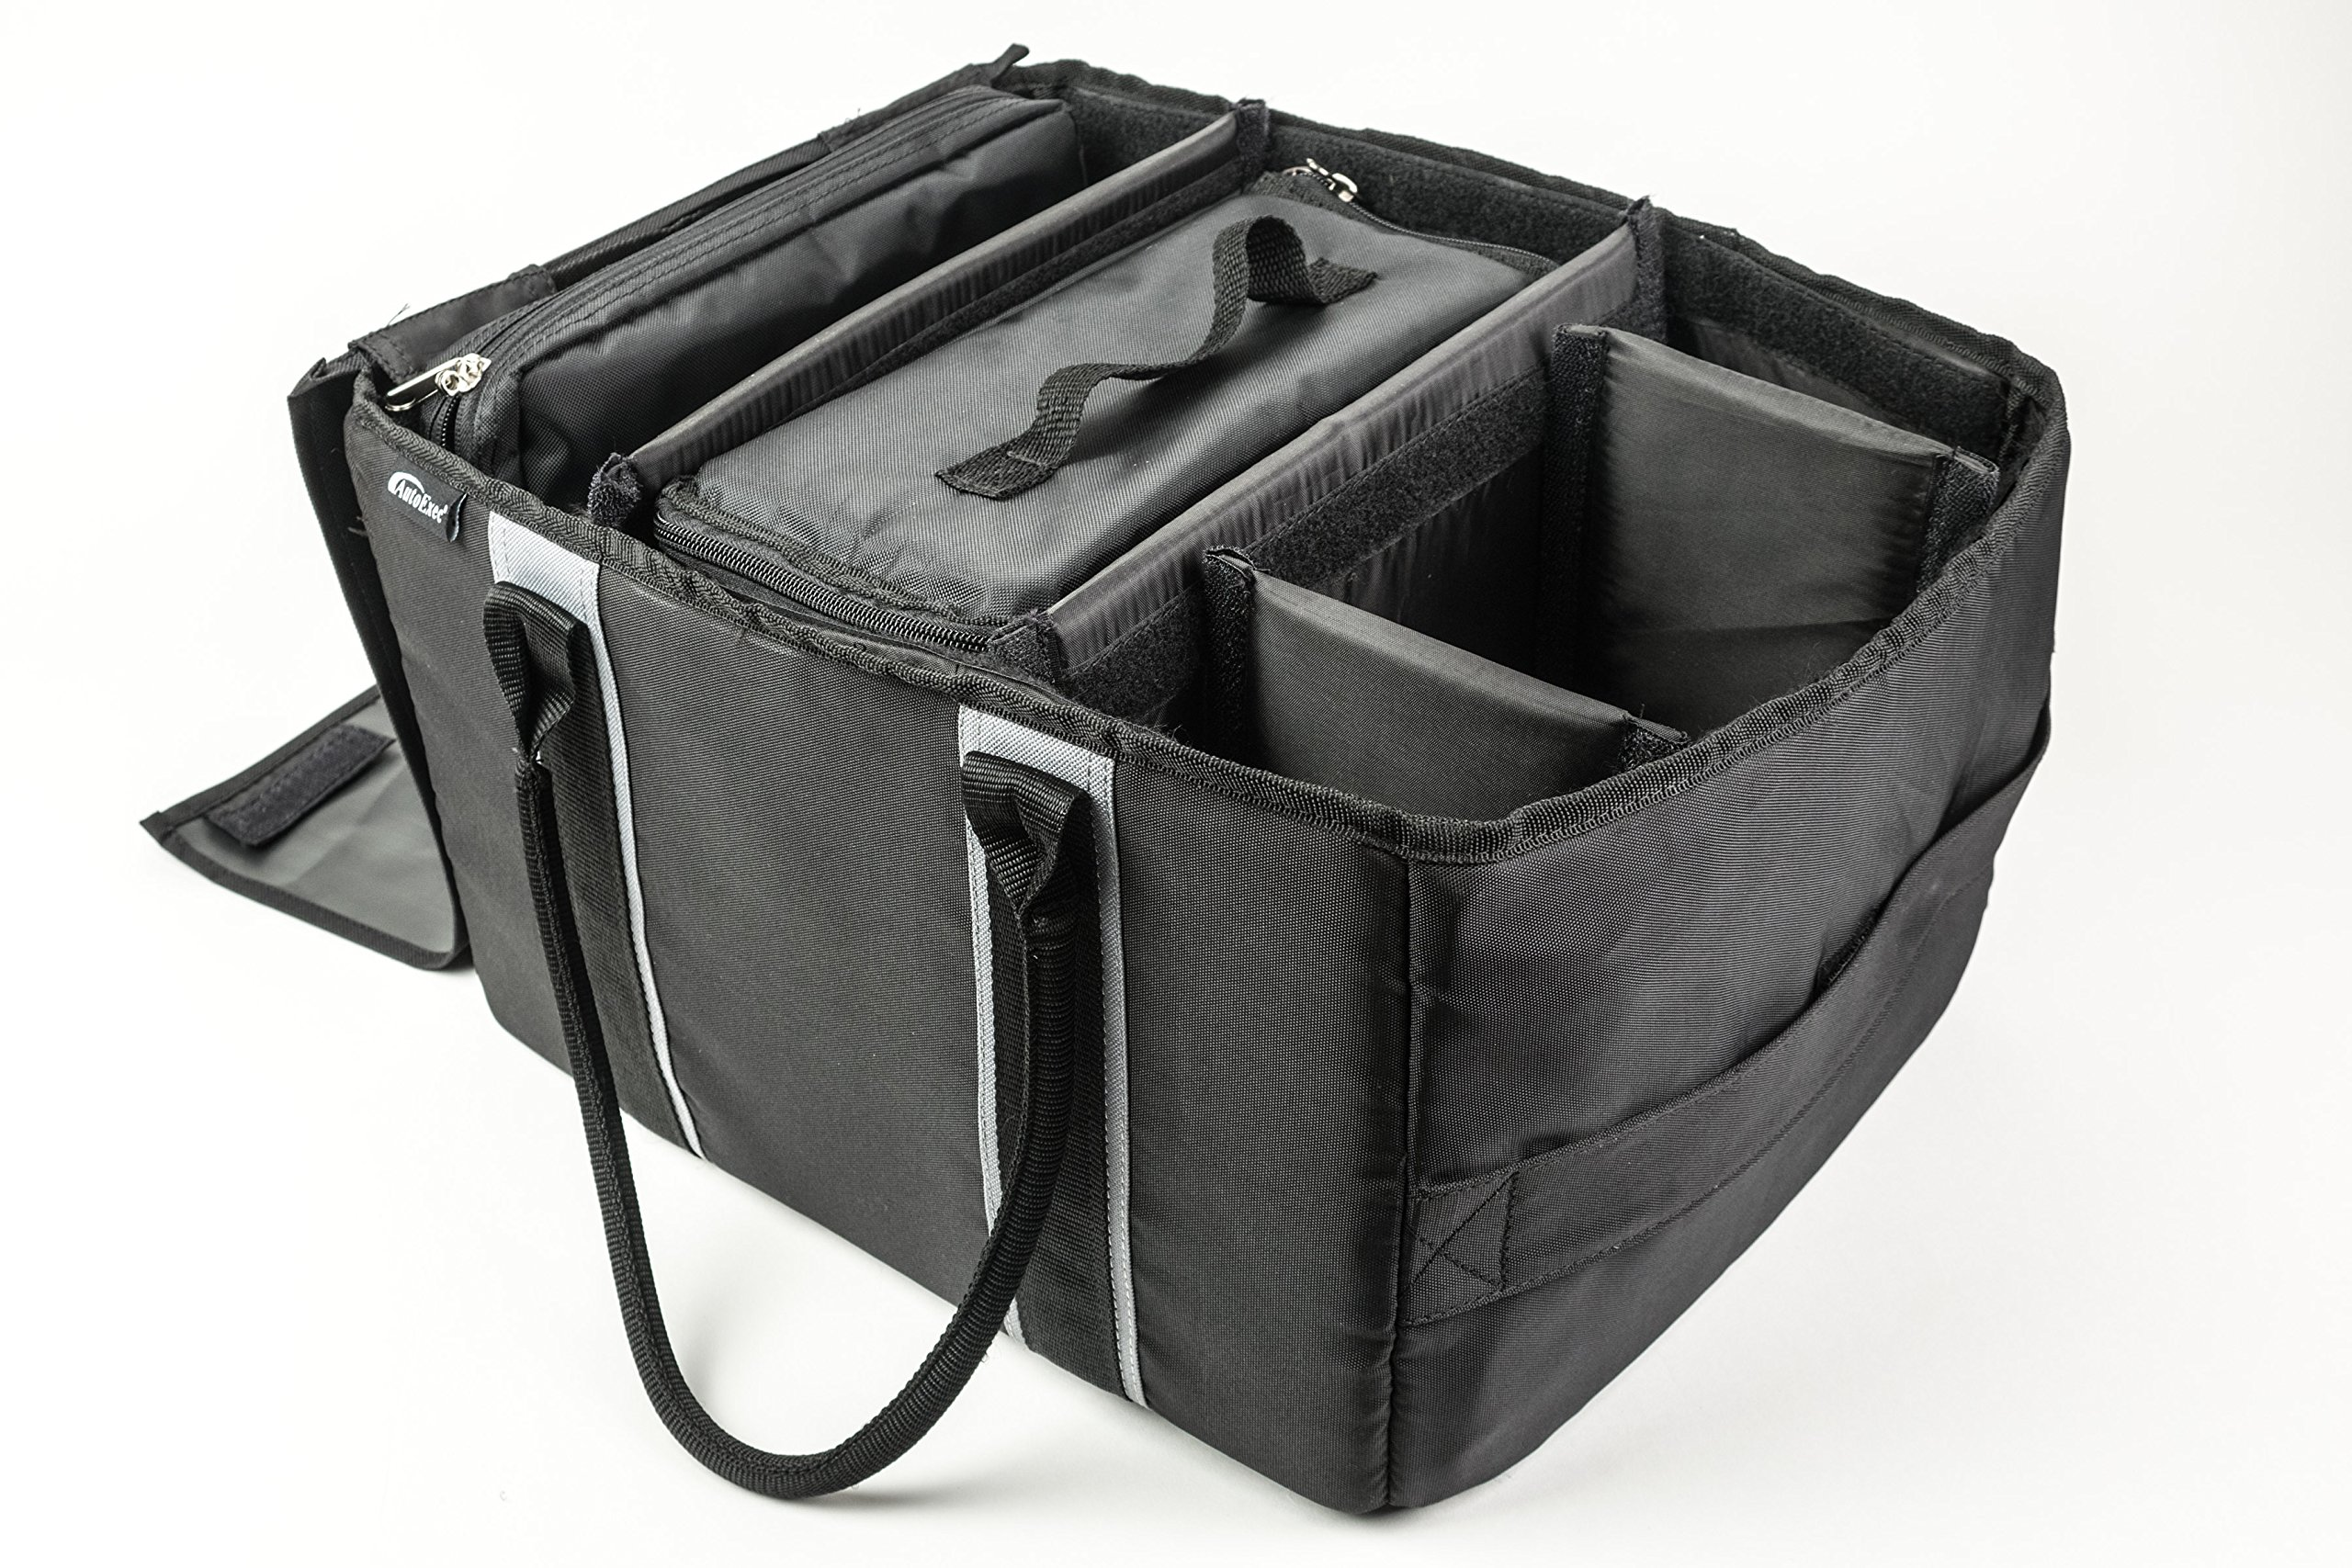 AutoExec AETote-08 Black/Grey File Tote with One Cooler and One Hanging File Holder by AutoExec (Image #4)